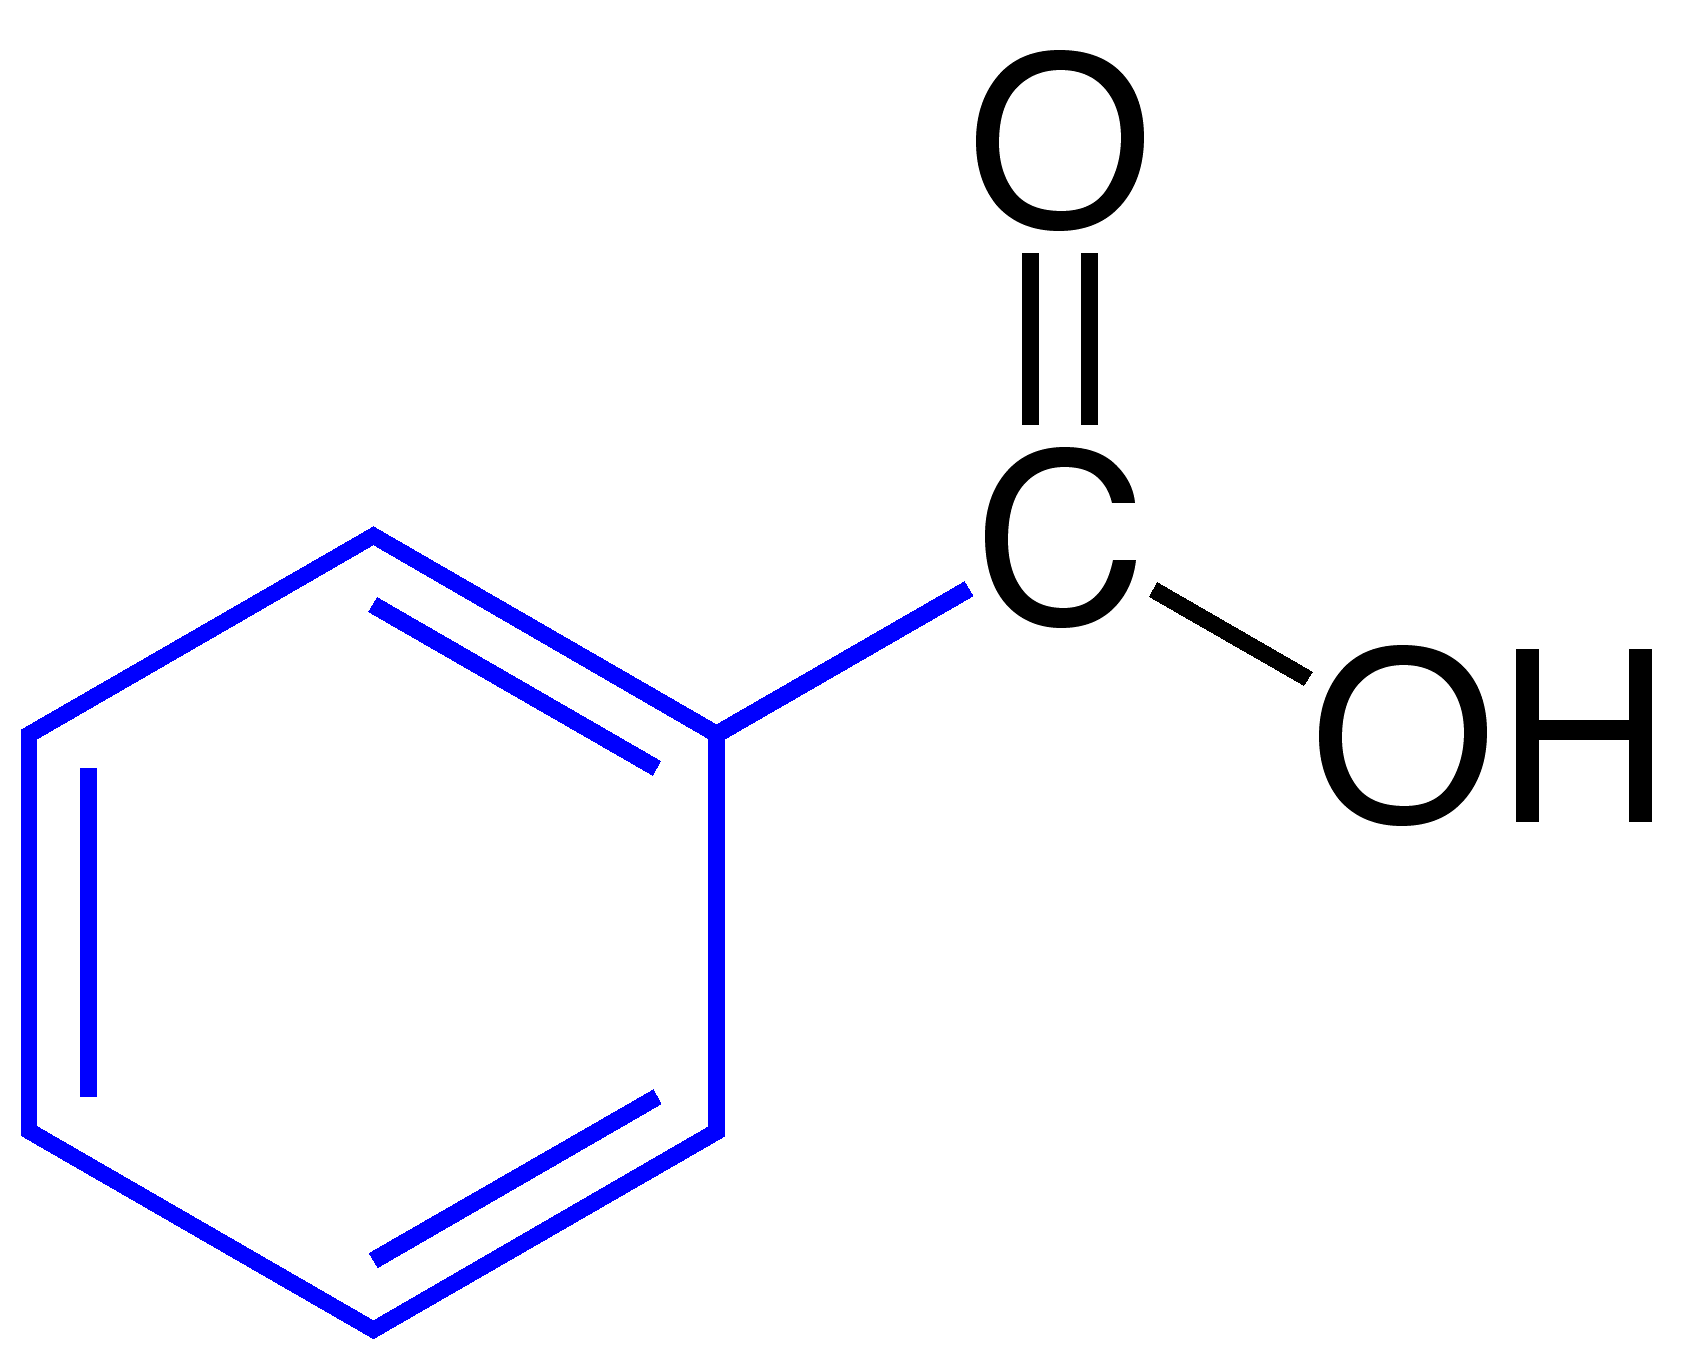 the extraction of benzoic acid